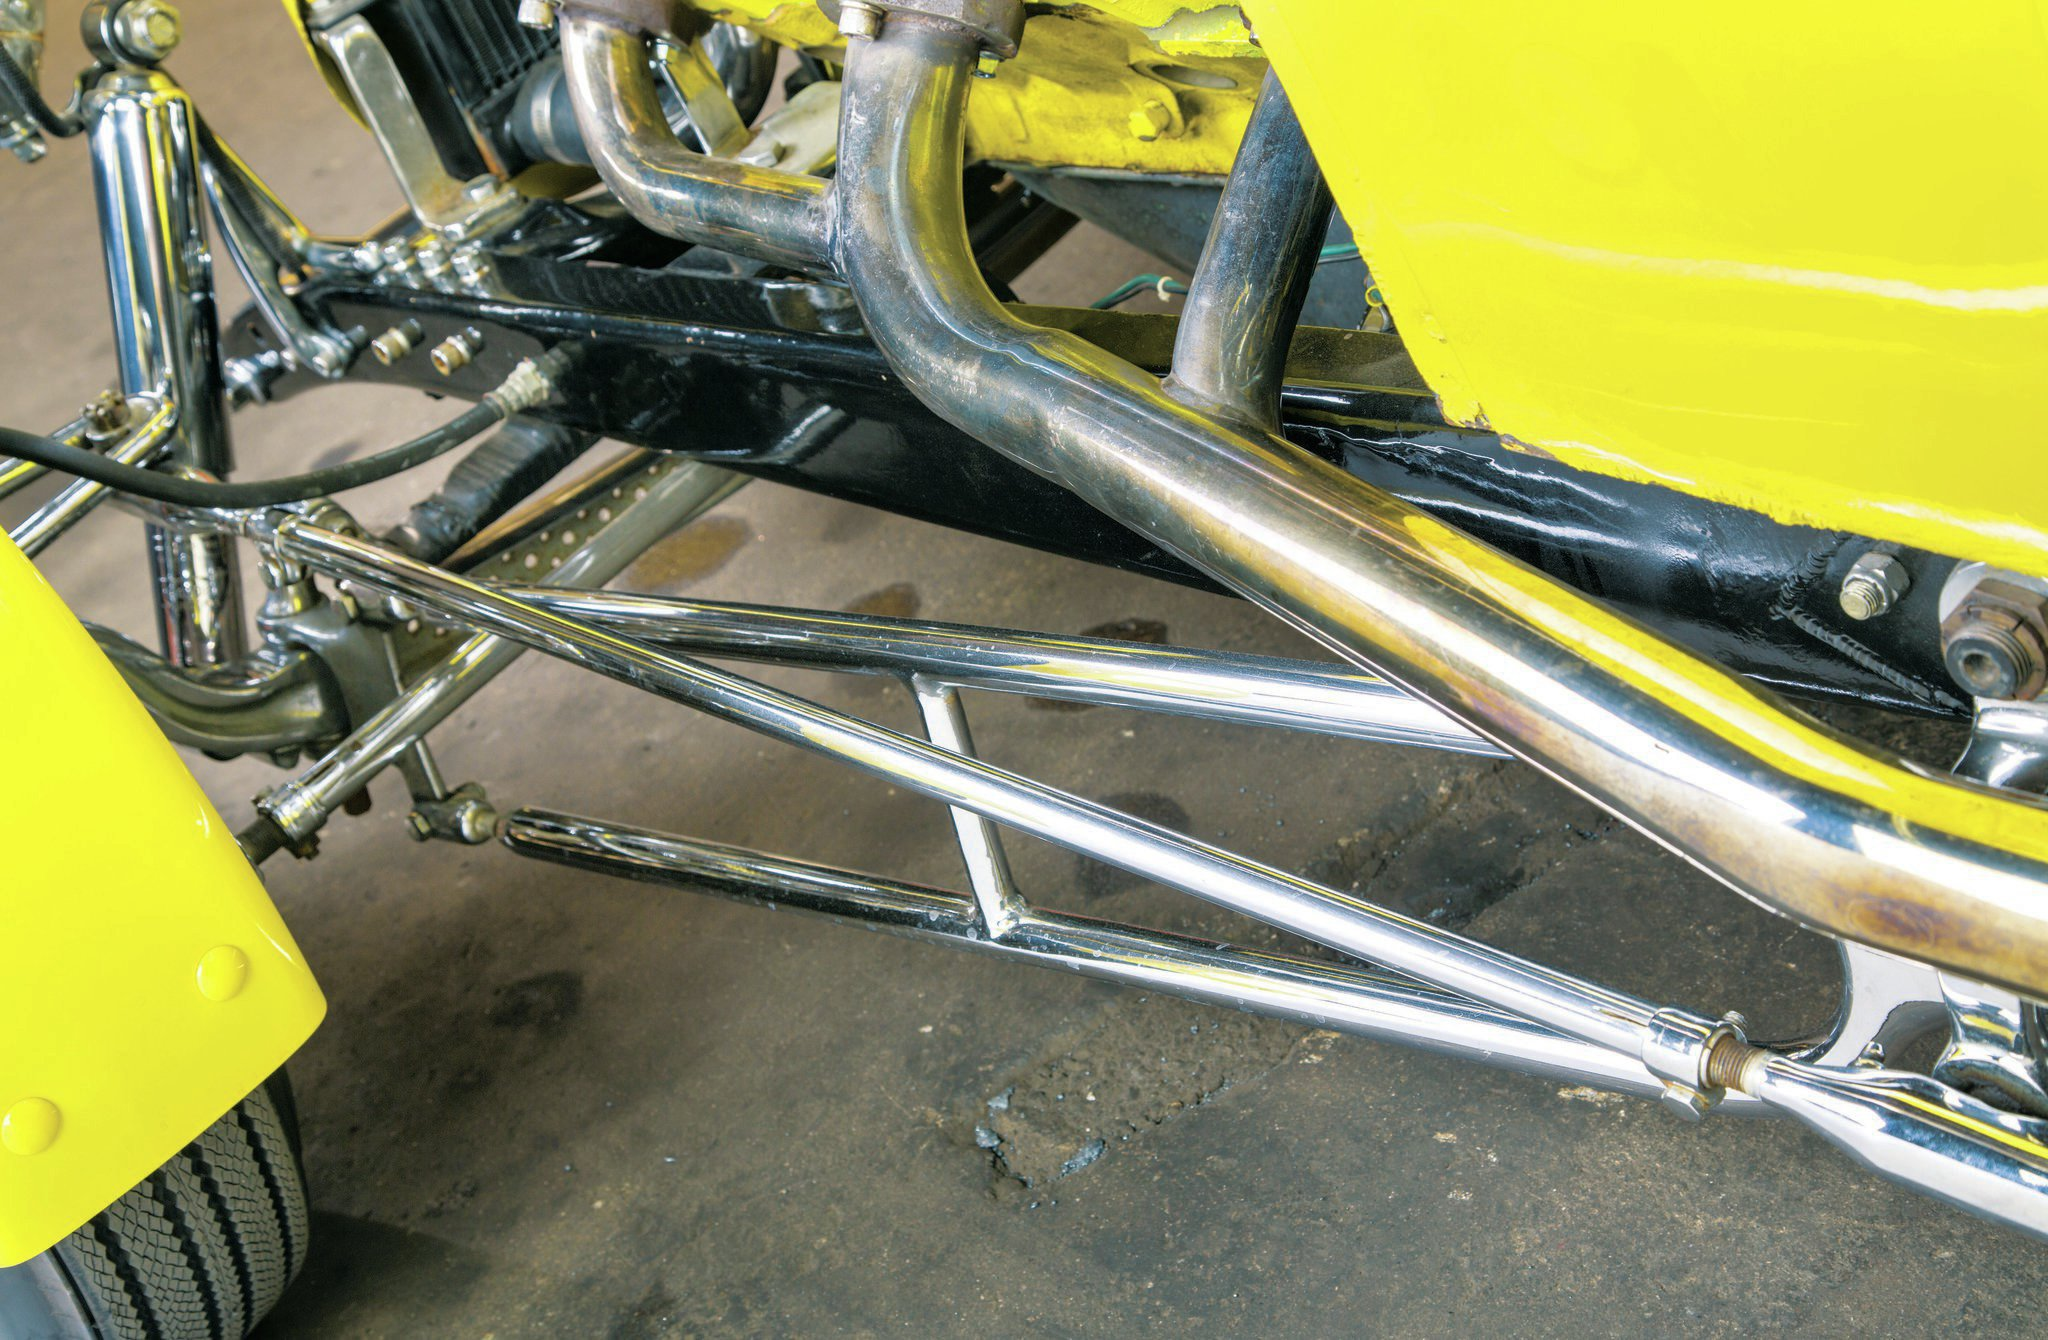 The headers, steering, and radius rods were all fabricated by Ken, plated by Woodie, and are still on the car today.